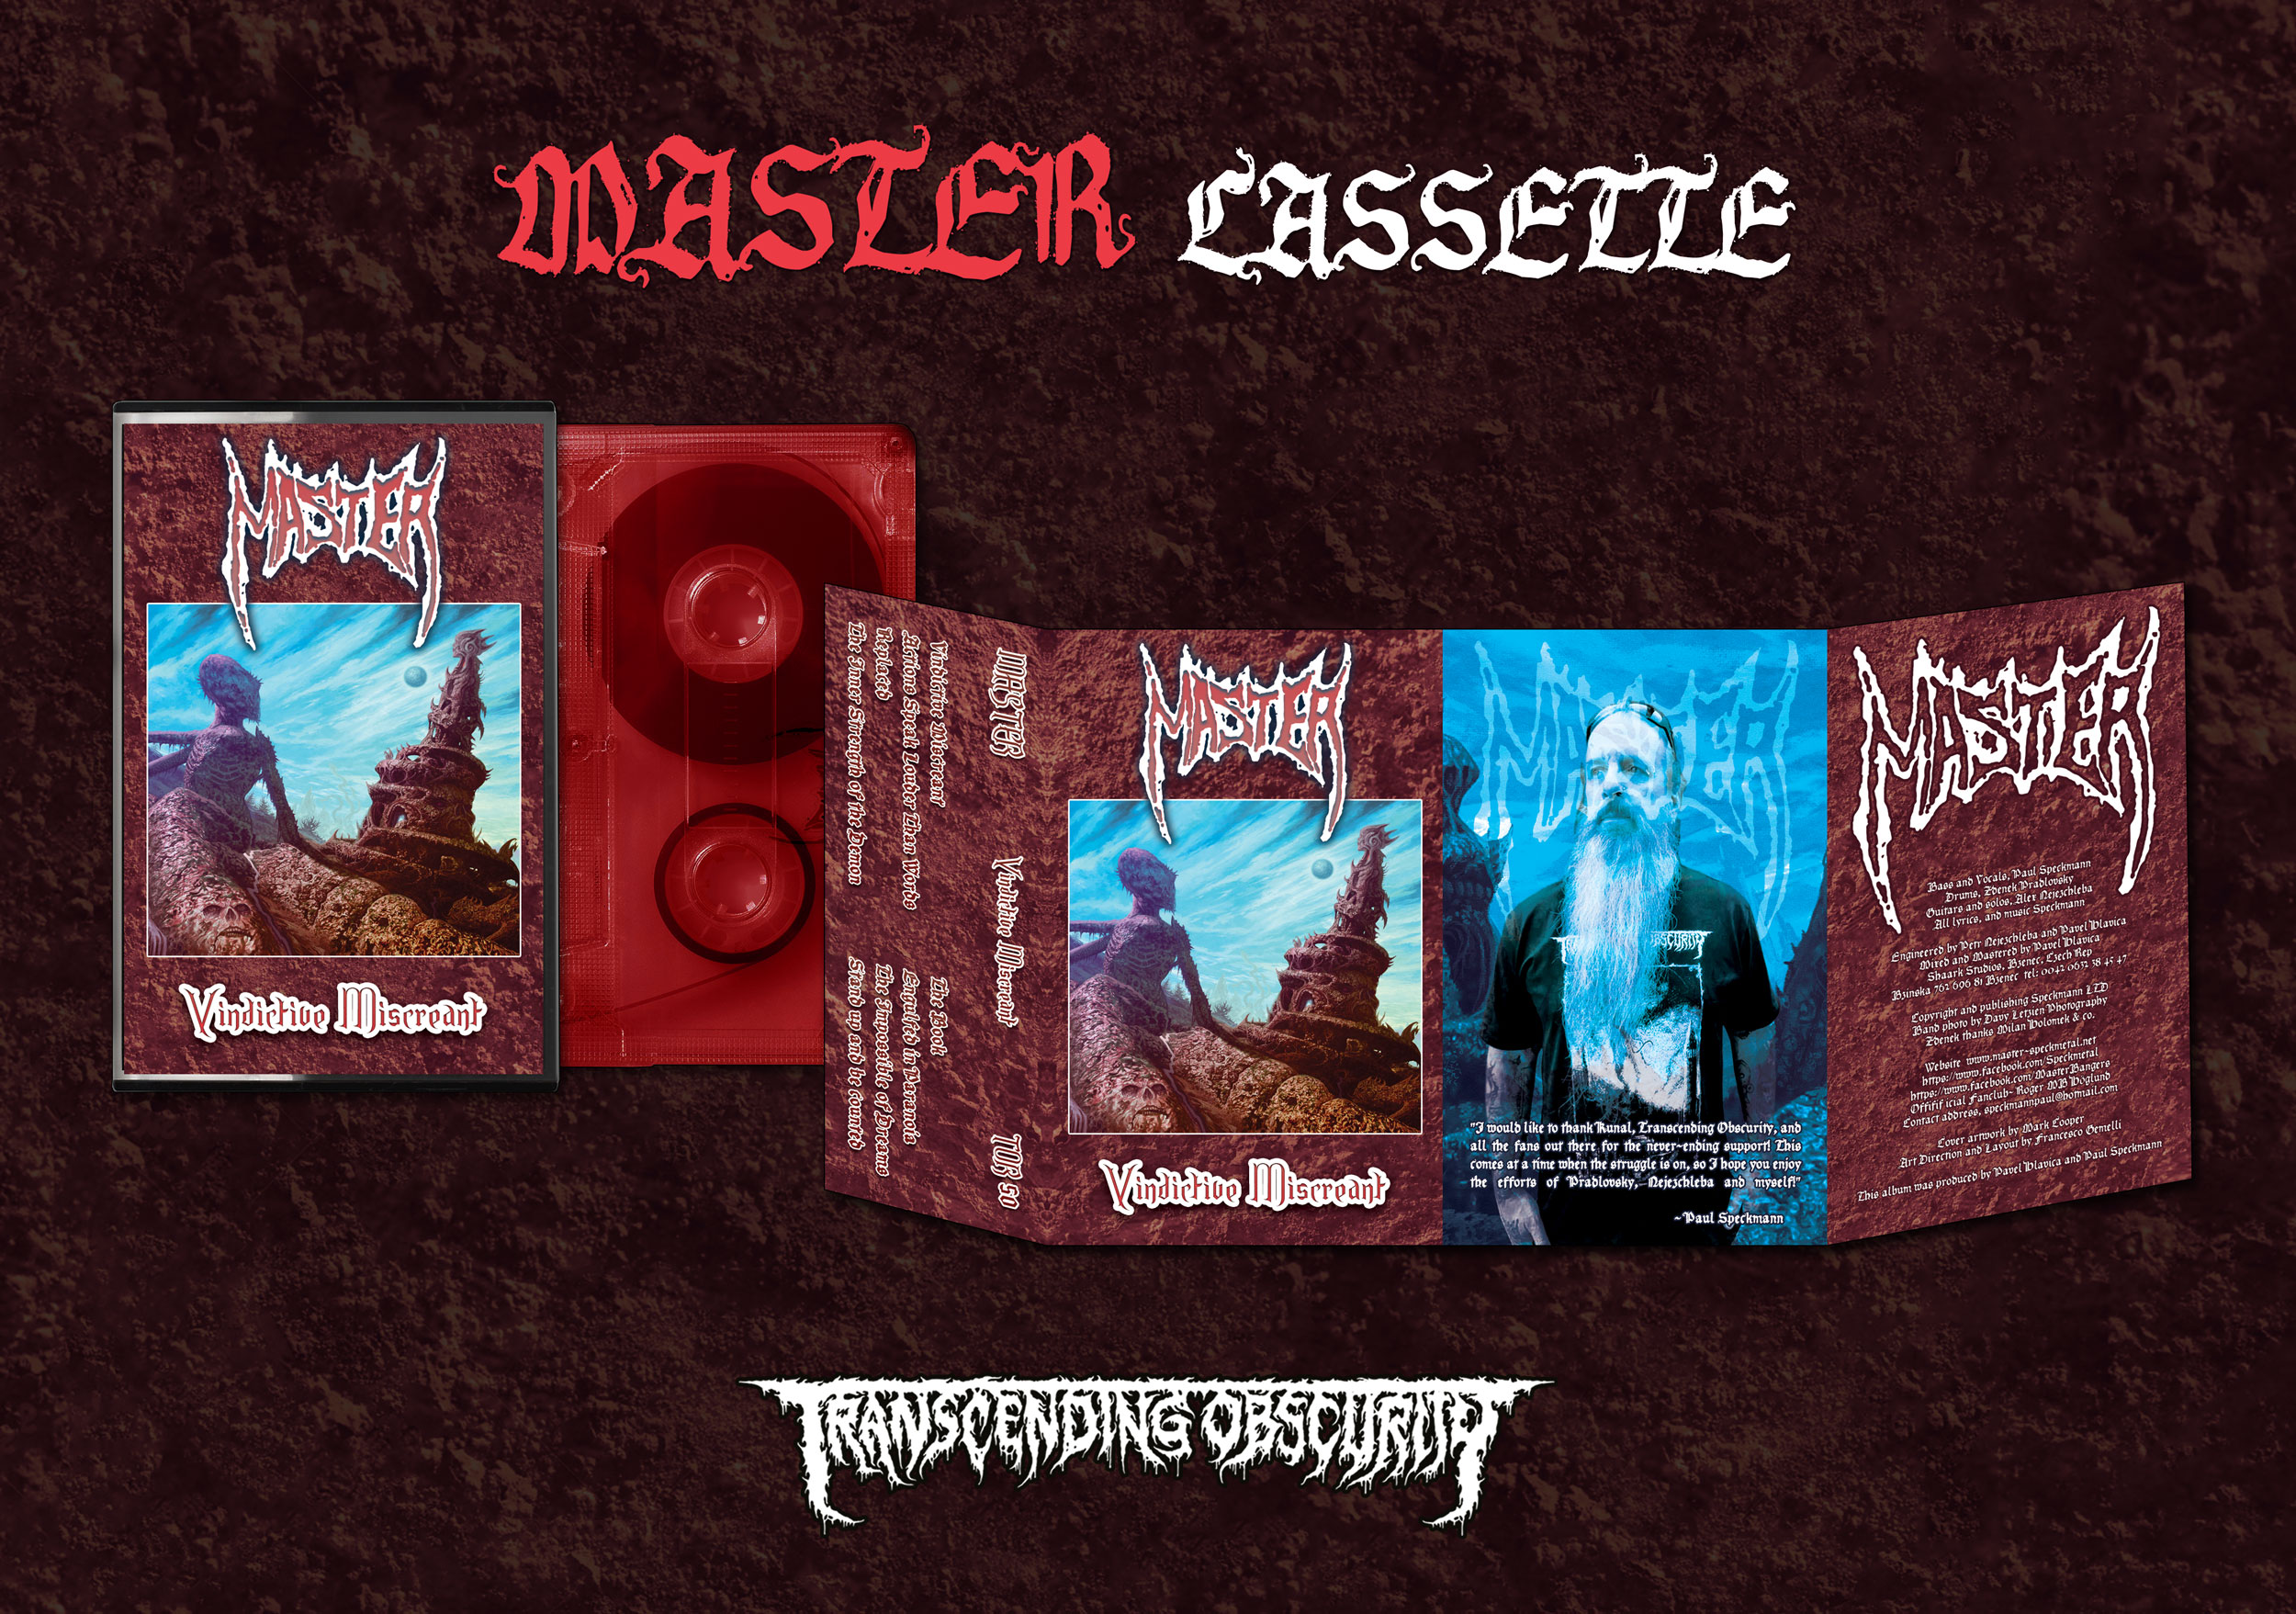 MASTER (Czech Republic) - Vindictive Miscreant Red Cassette with 5-panel J-card (Limited to 100)